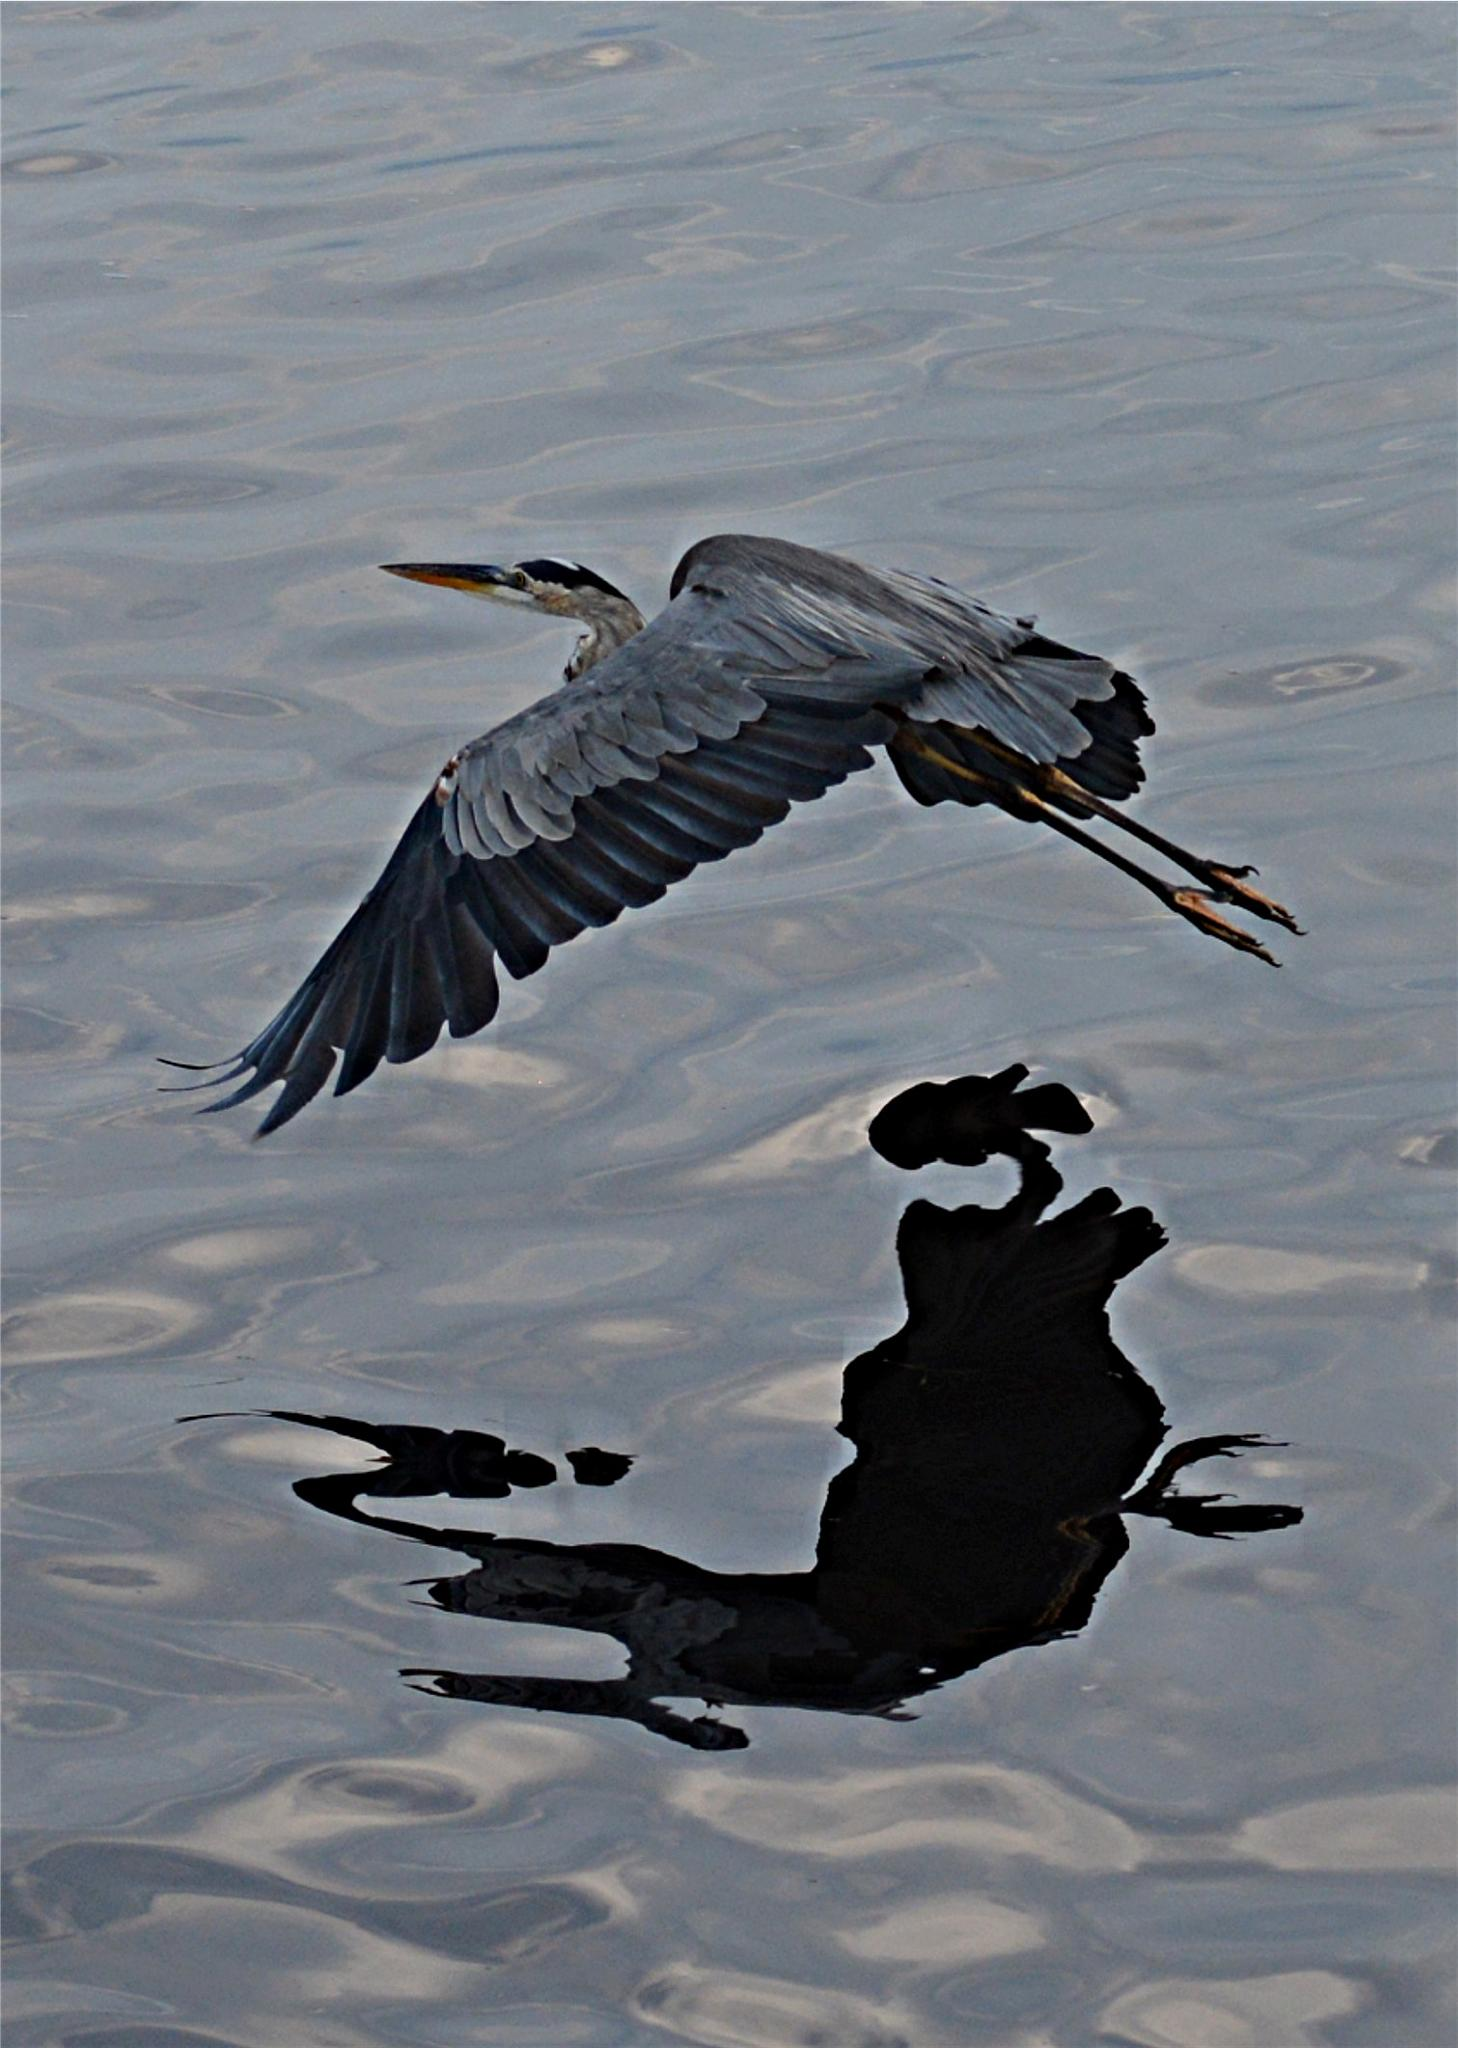 Blue heron over water by rayzicakes